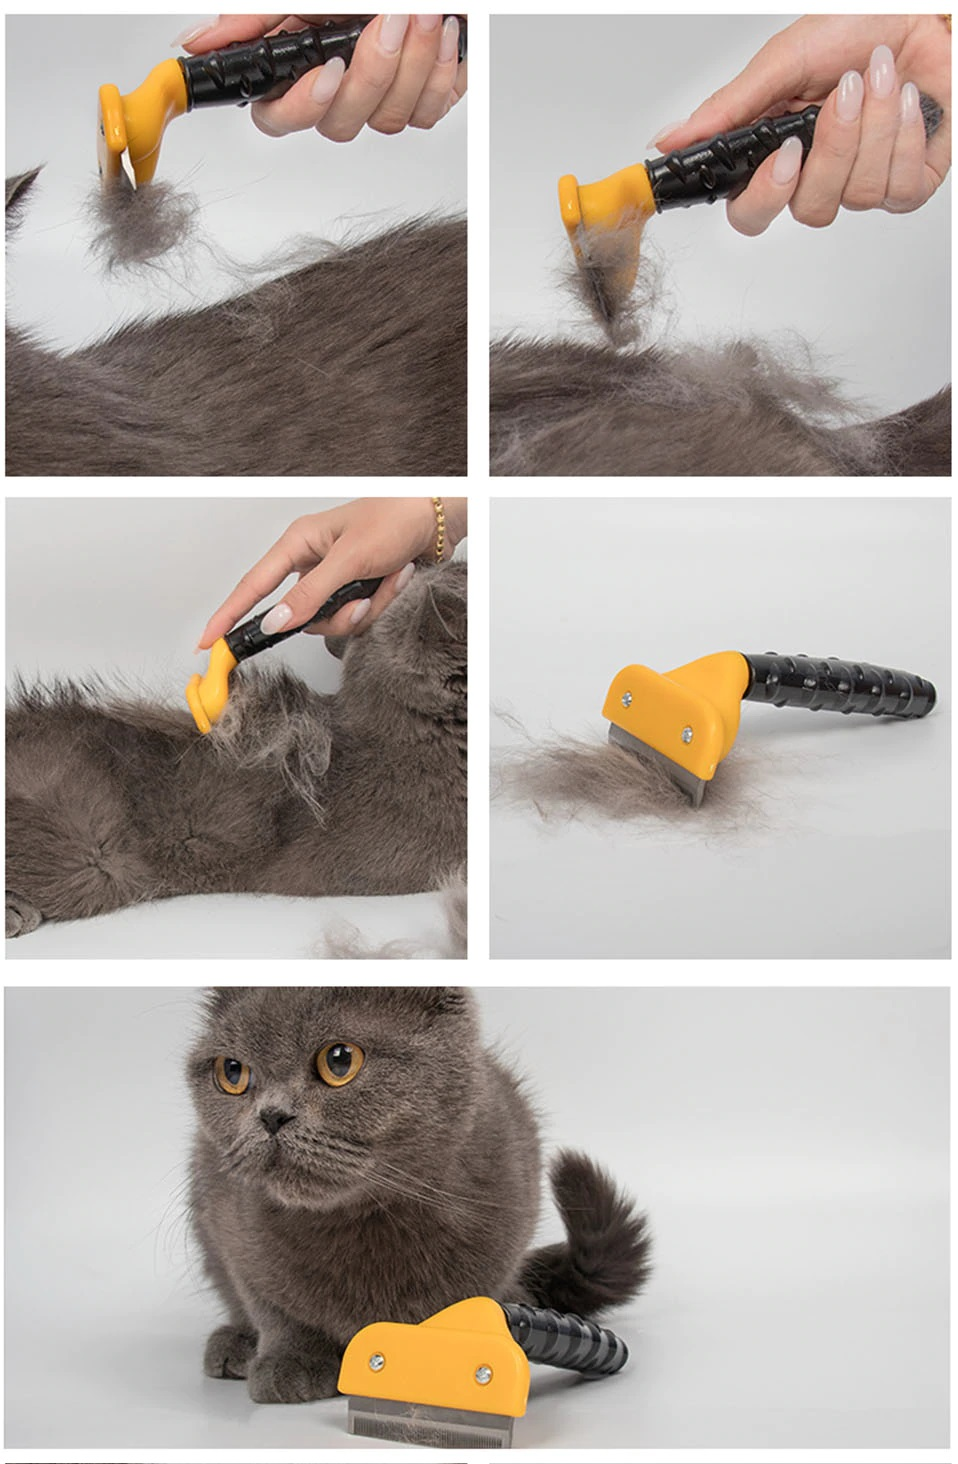 Pet Hair Removal Comb / Brush (Dog and Cat) Grooming Tool - Pet Accessories - Pet Store - Pet supplies